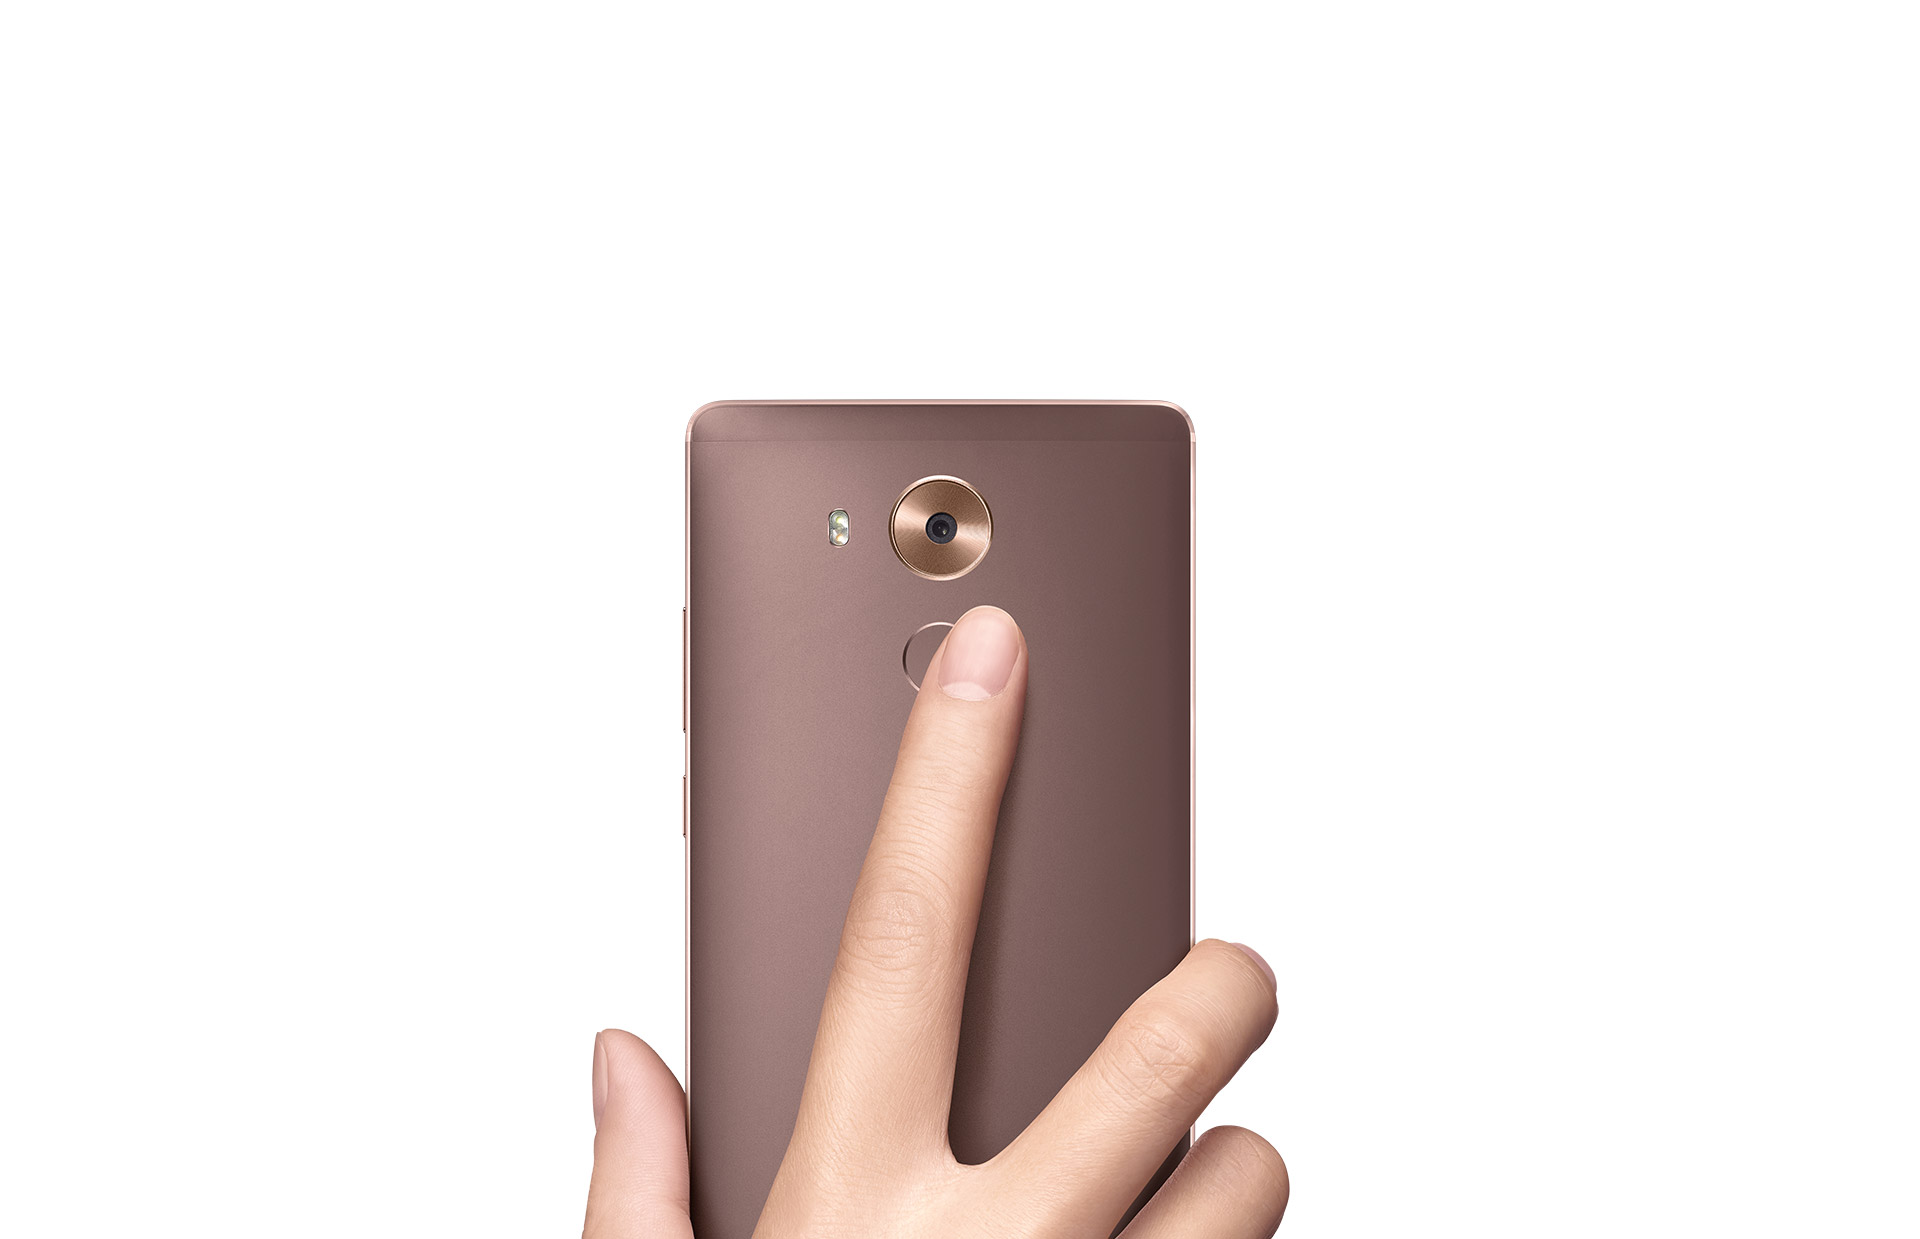 Huawei-Mate-8-official-images (18)